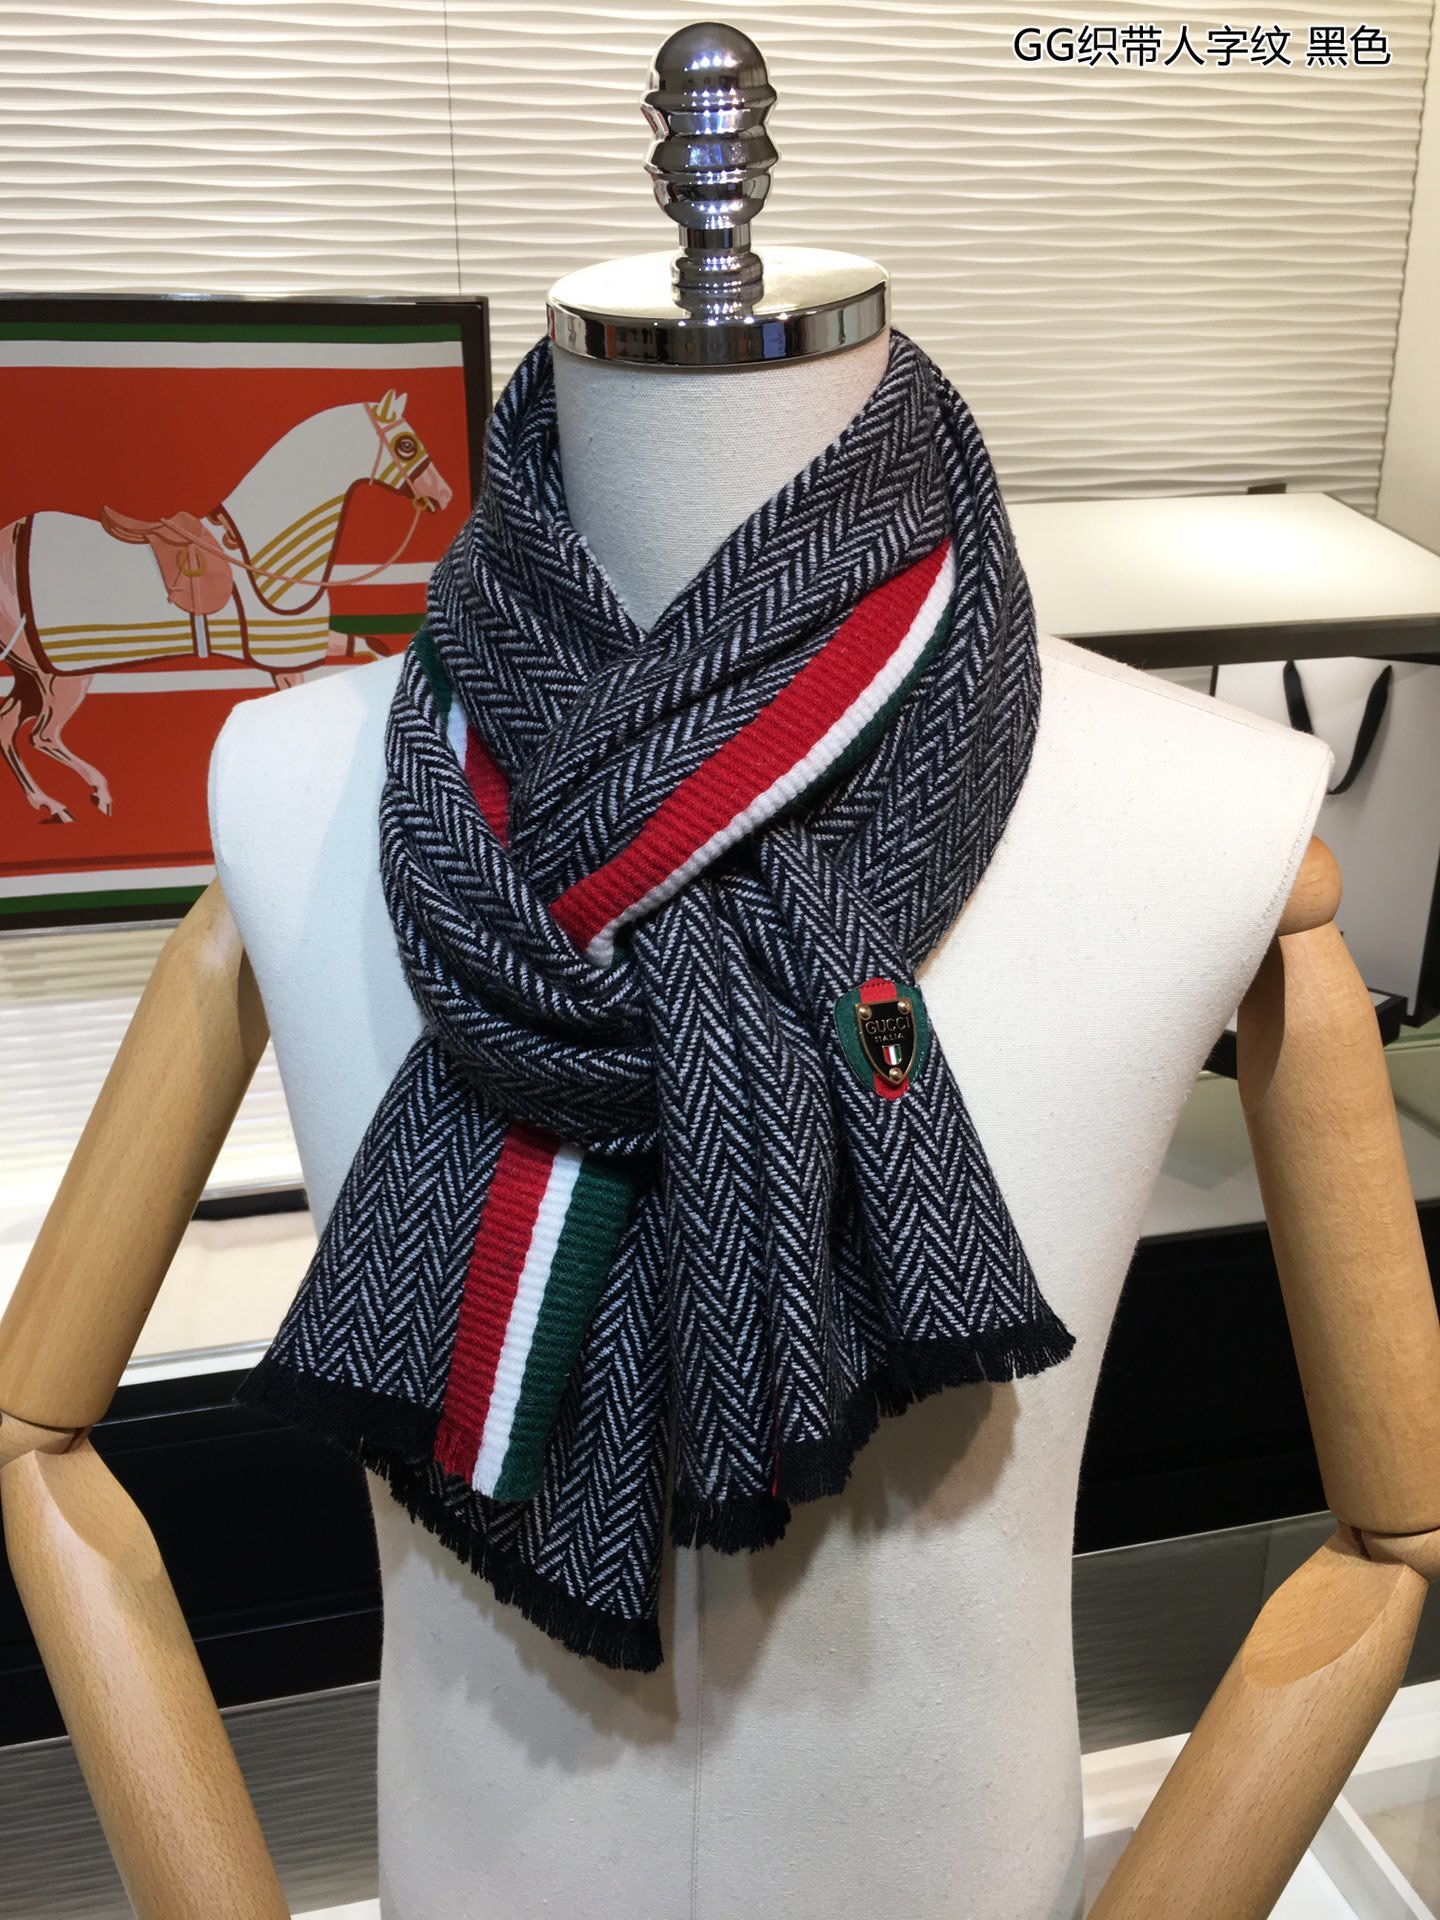 Cheap Replica Gucci Women Scarves 0018